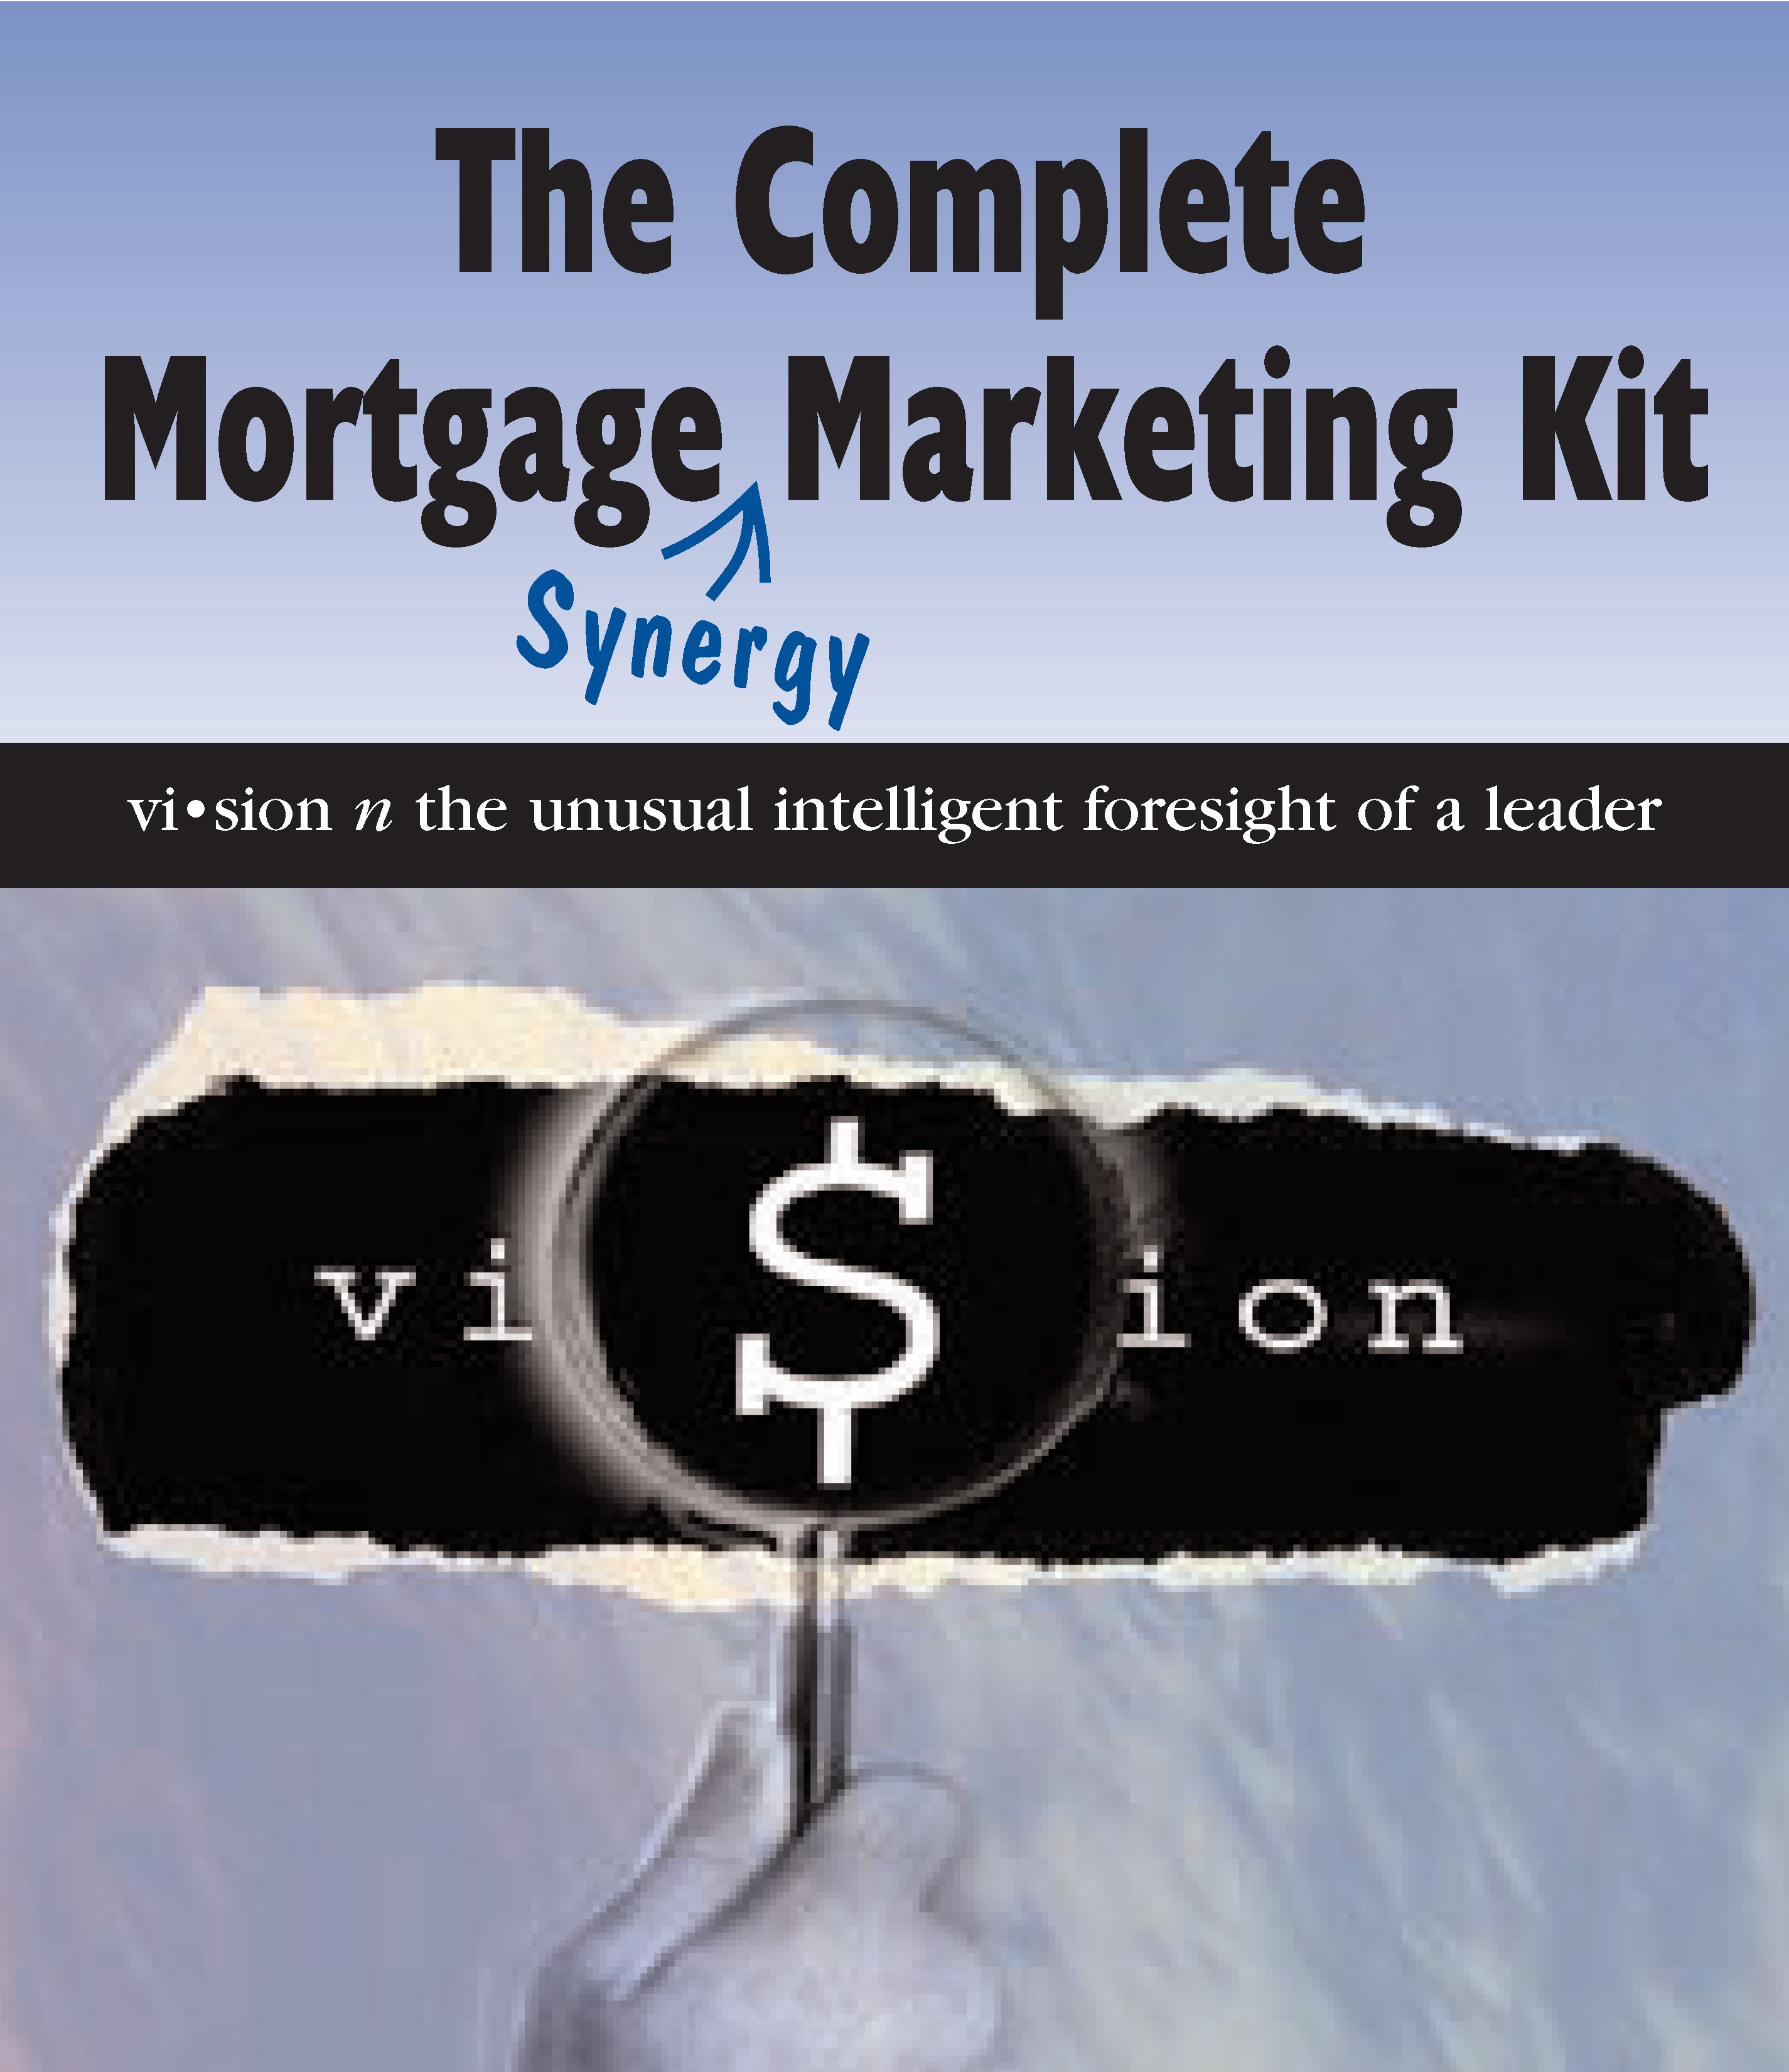 The Complete Mortgage Marketing Kit